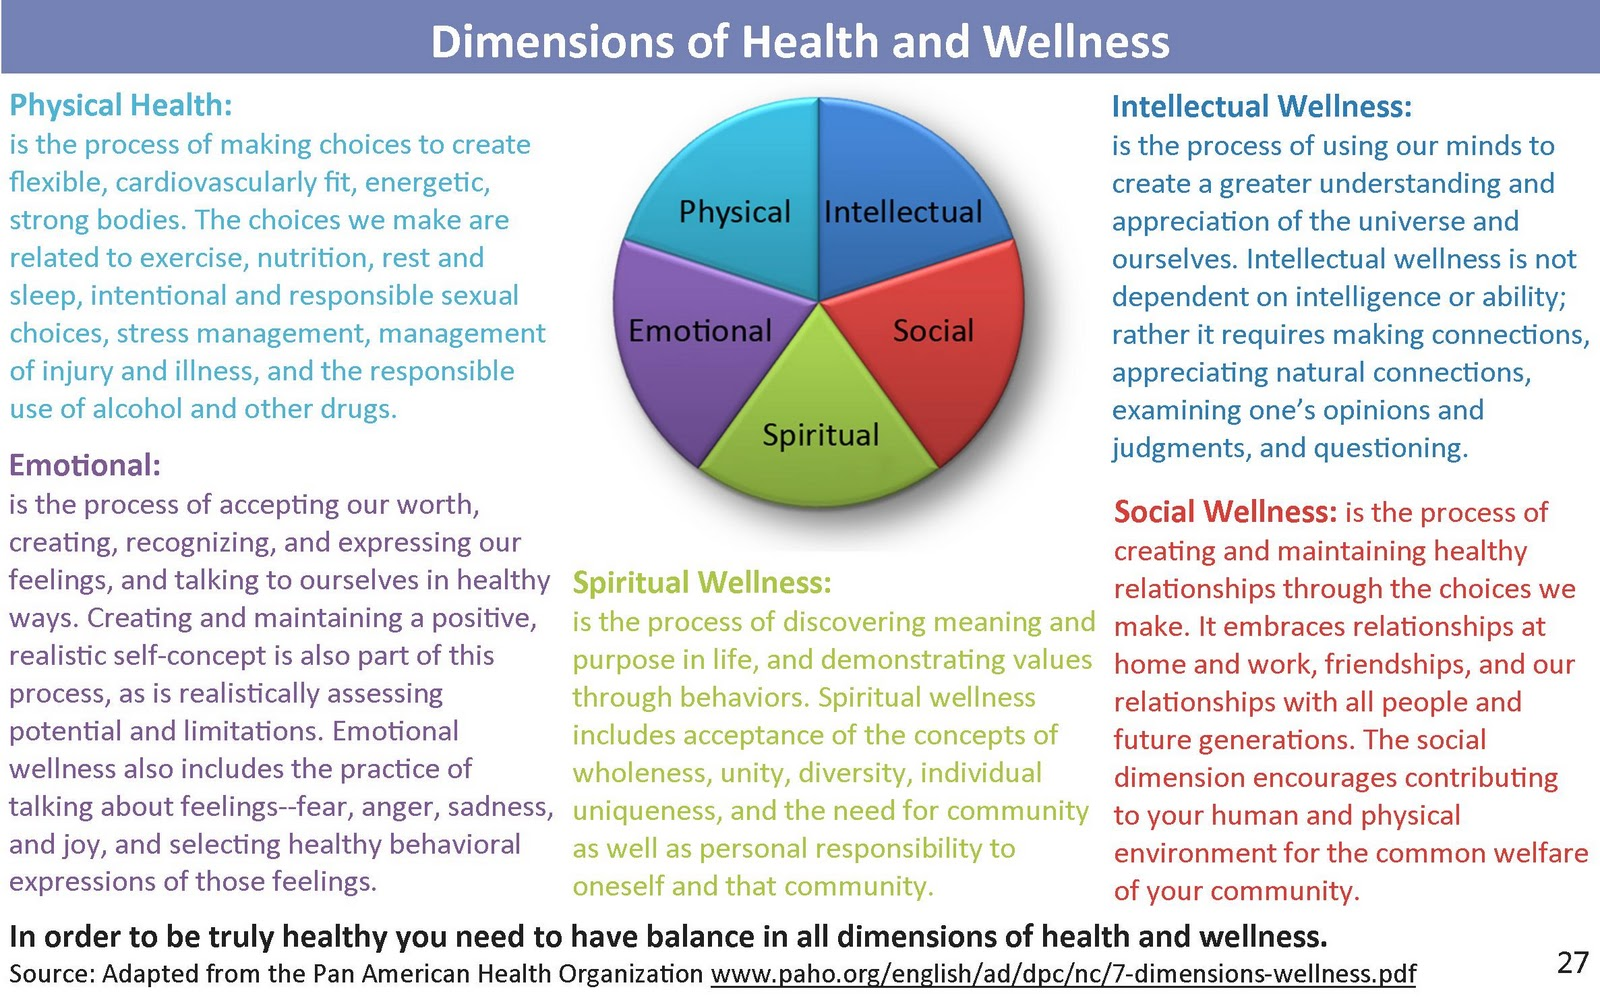 5 Dimensions of Health http://weighbiggestloserswj.blogspot.com/2012/02/dimensions-of-health-and-wellness.html